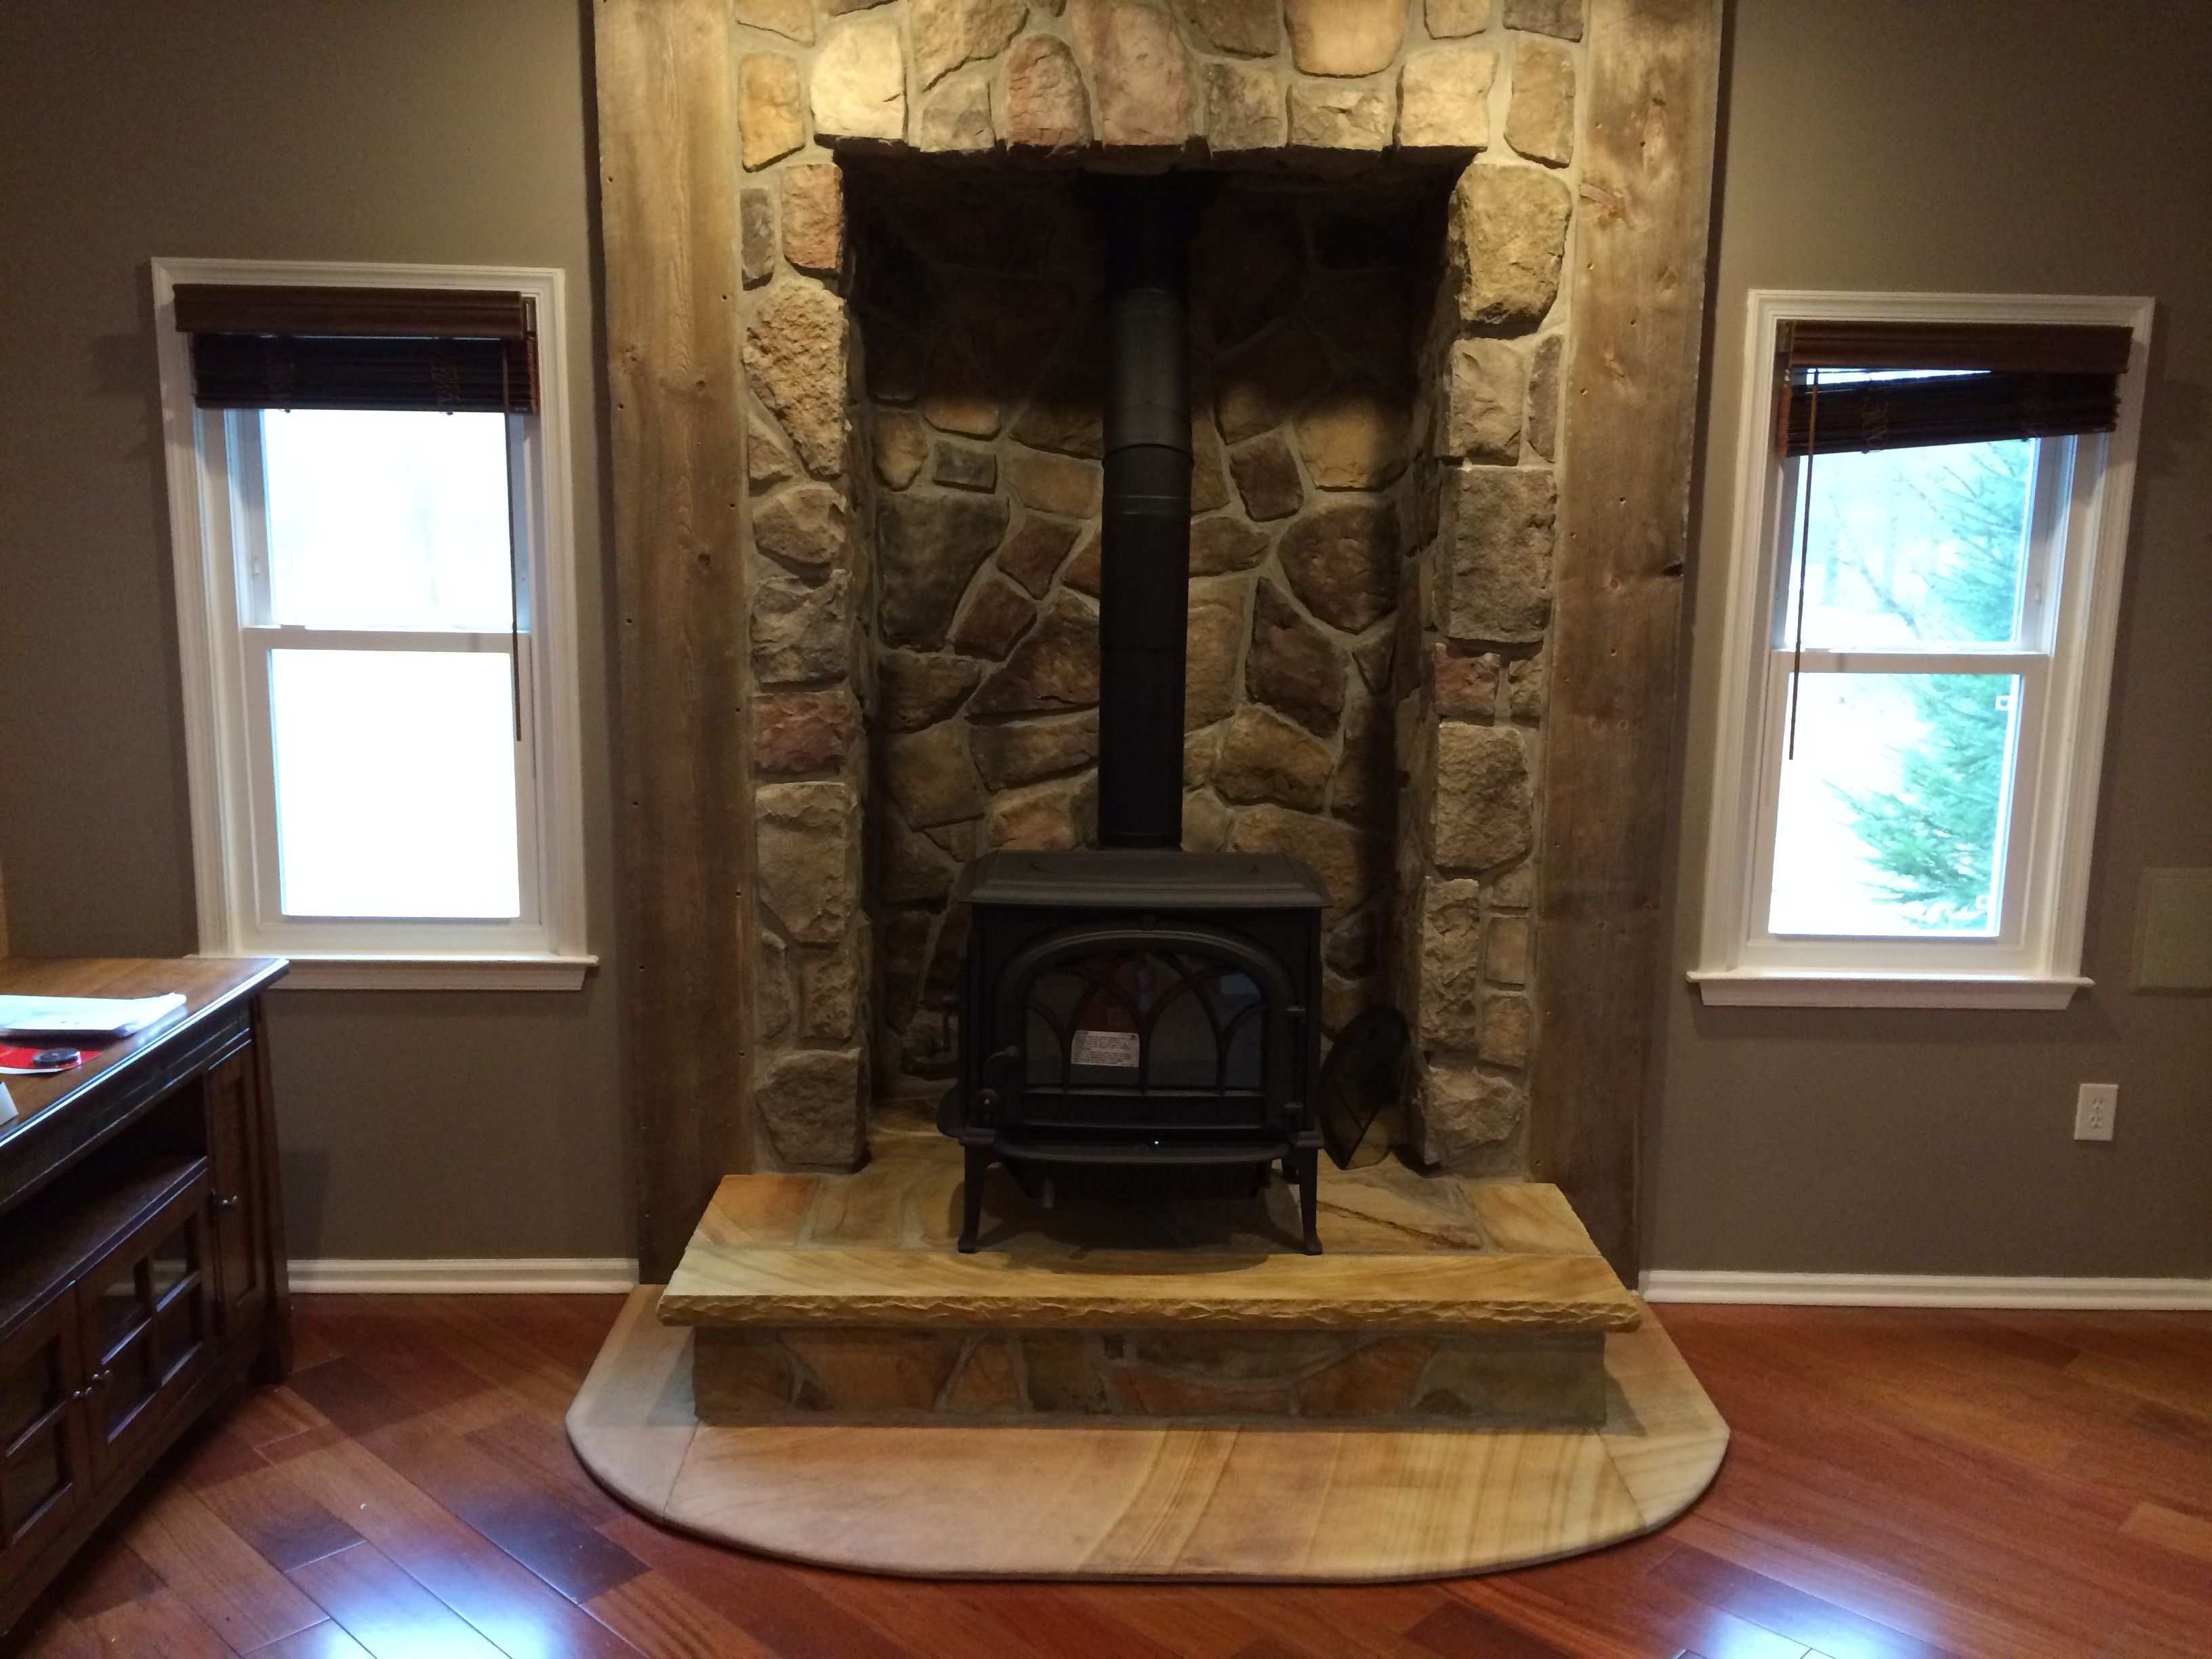 getting built designs small wooden surrounds wood full size with and the fireplace surround of warmer prefabricated reclaimed ready mantel mantle decorating mantels